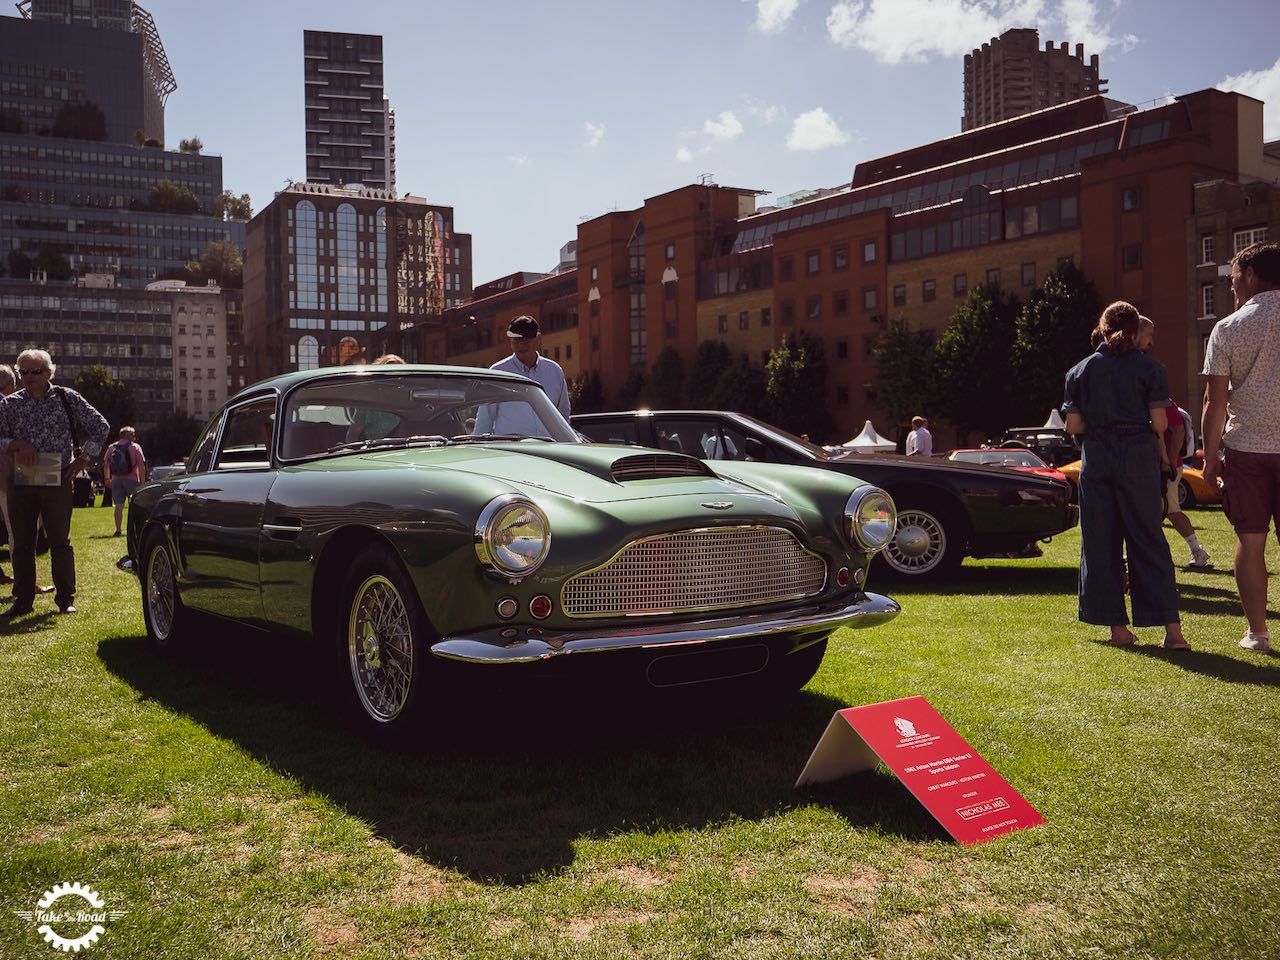 Tickets go on sale for new Three-Day London Concours